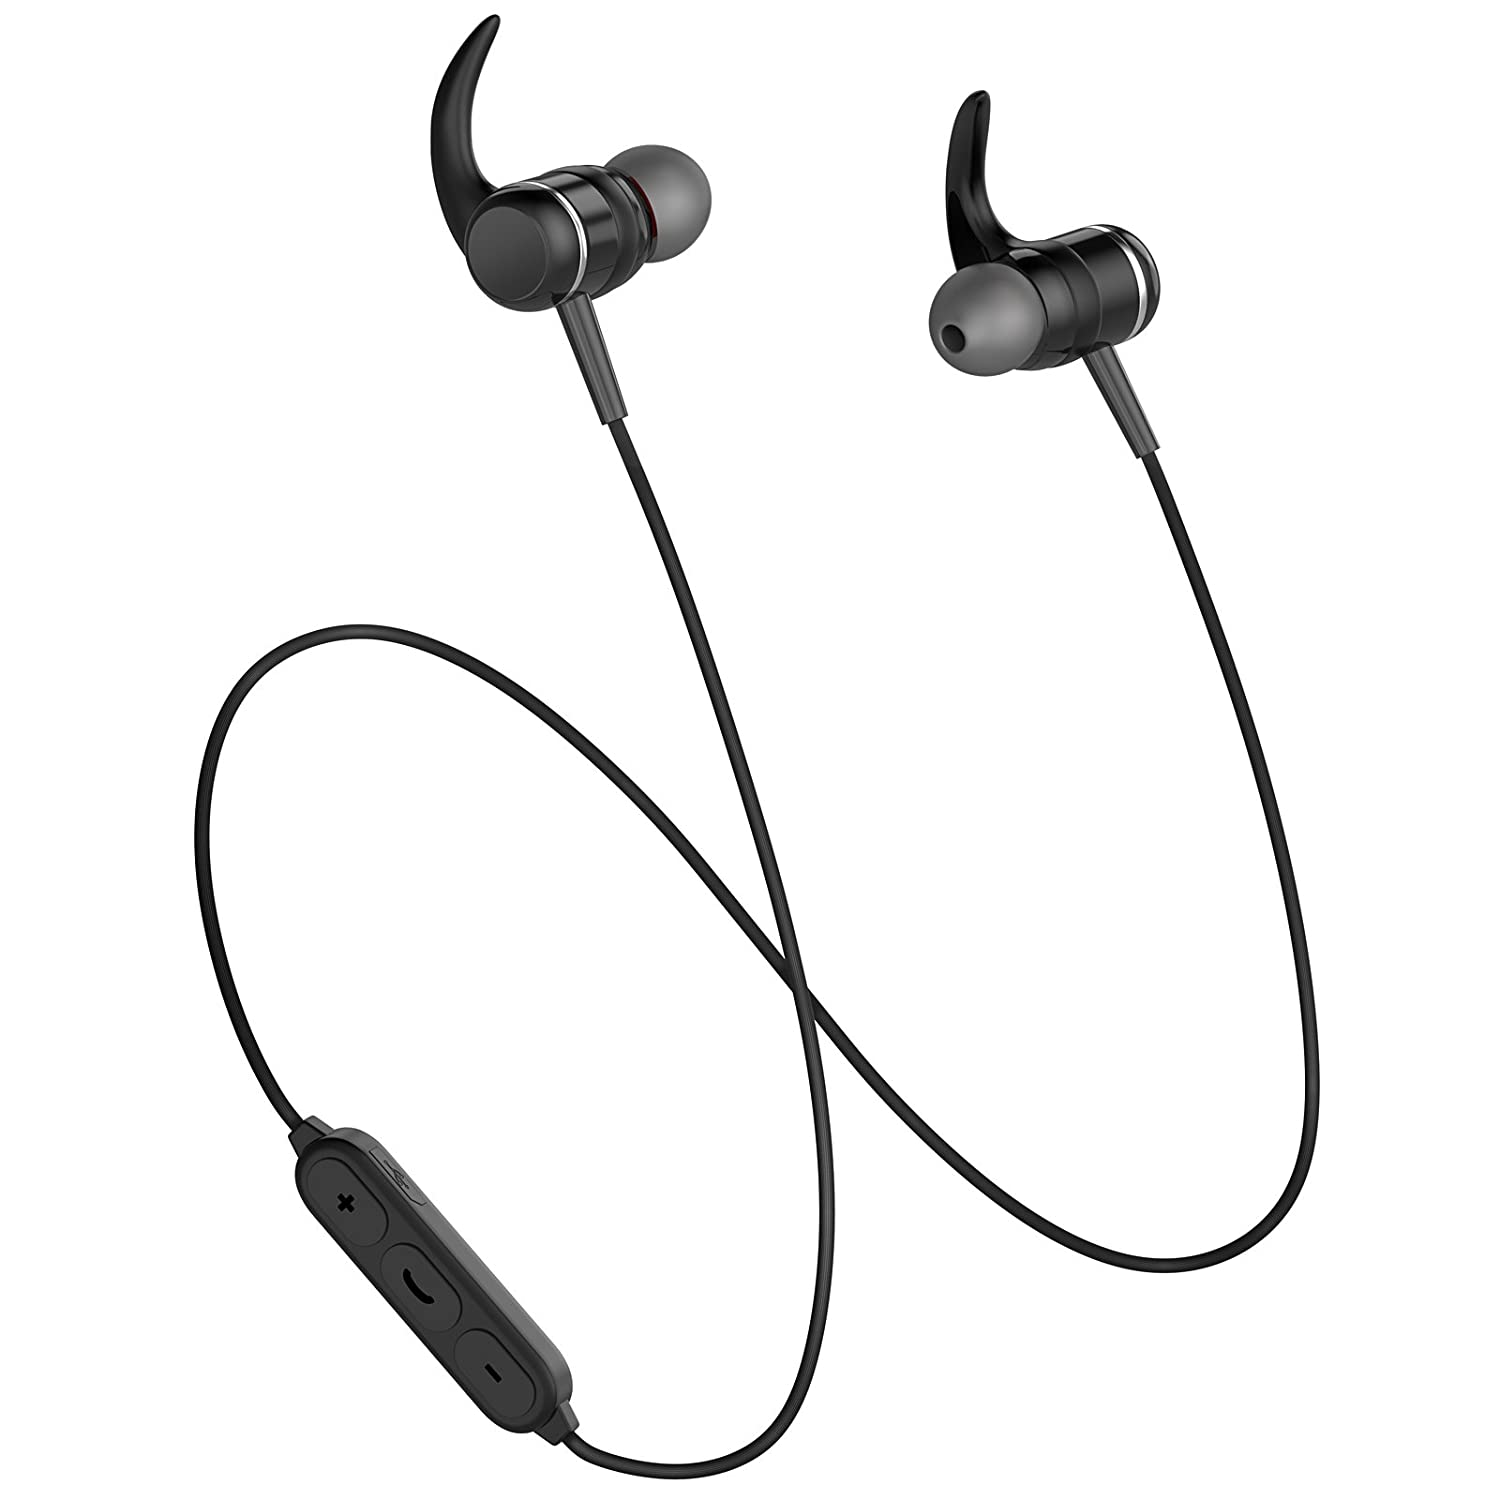 Bluetooth Headphones, Earbuds 4.1 With Mic, Sweatproof Headset for Gym Workout